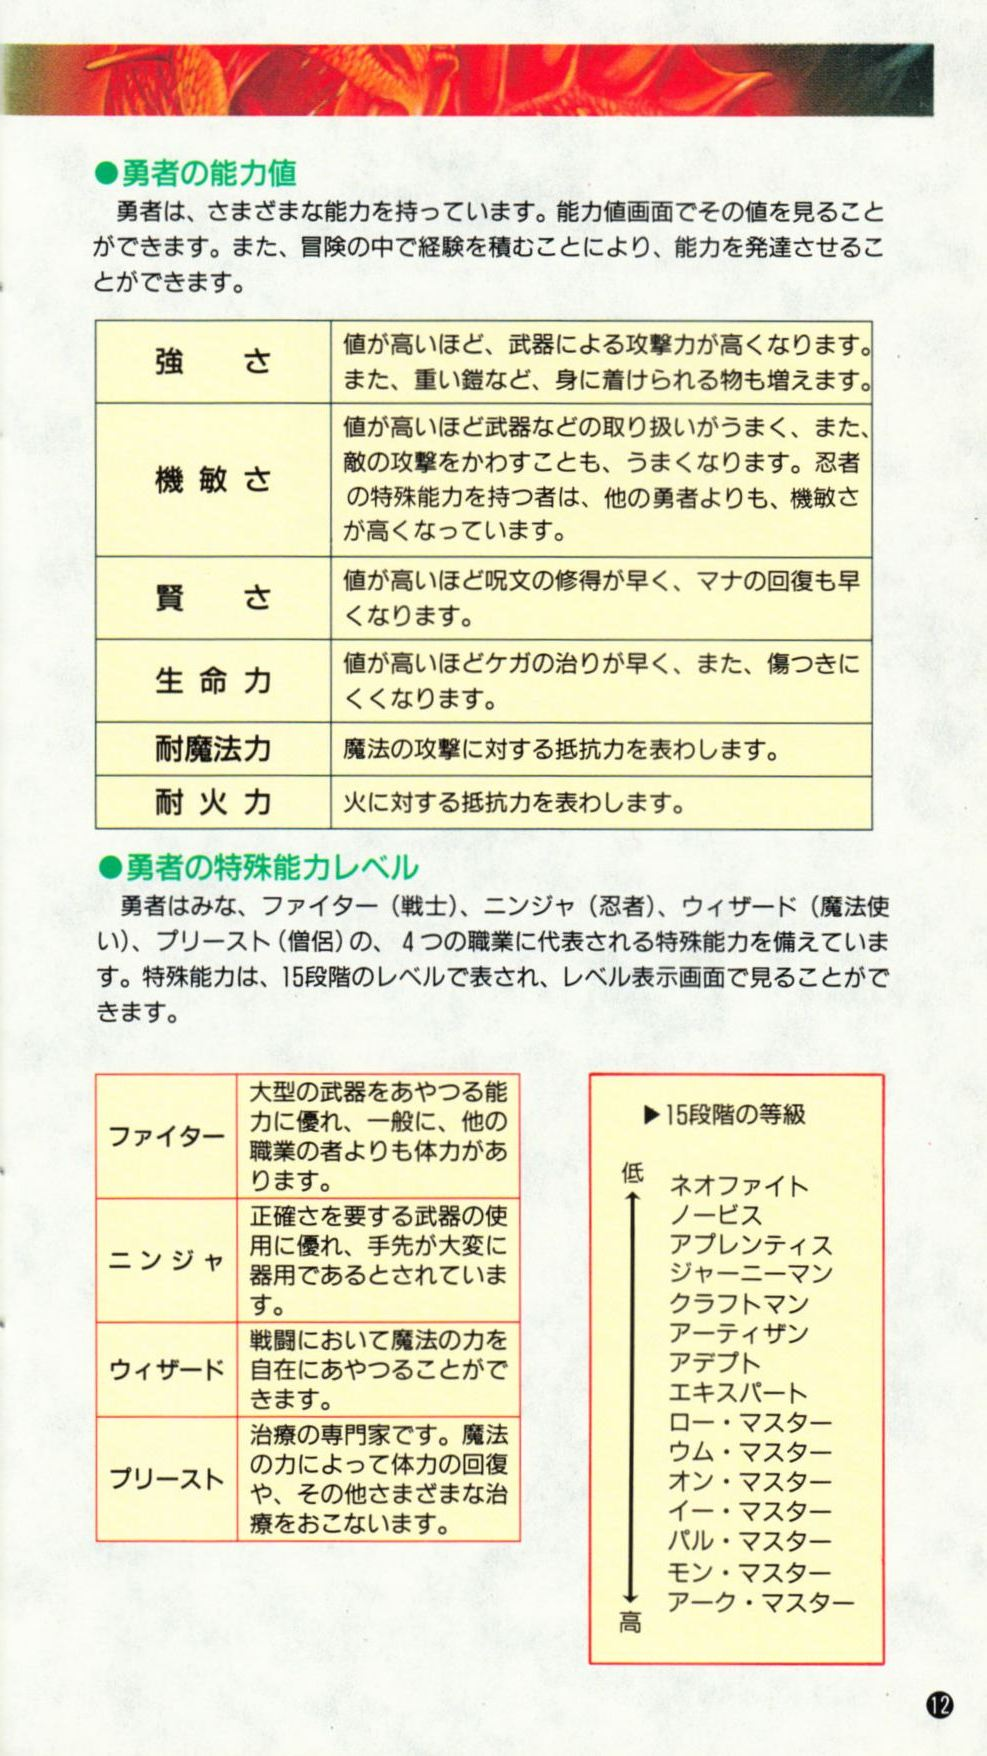 Game - Dungeon Master - JP - Super Famicom - Manual - Page 015 - Scan